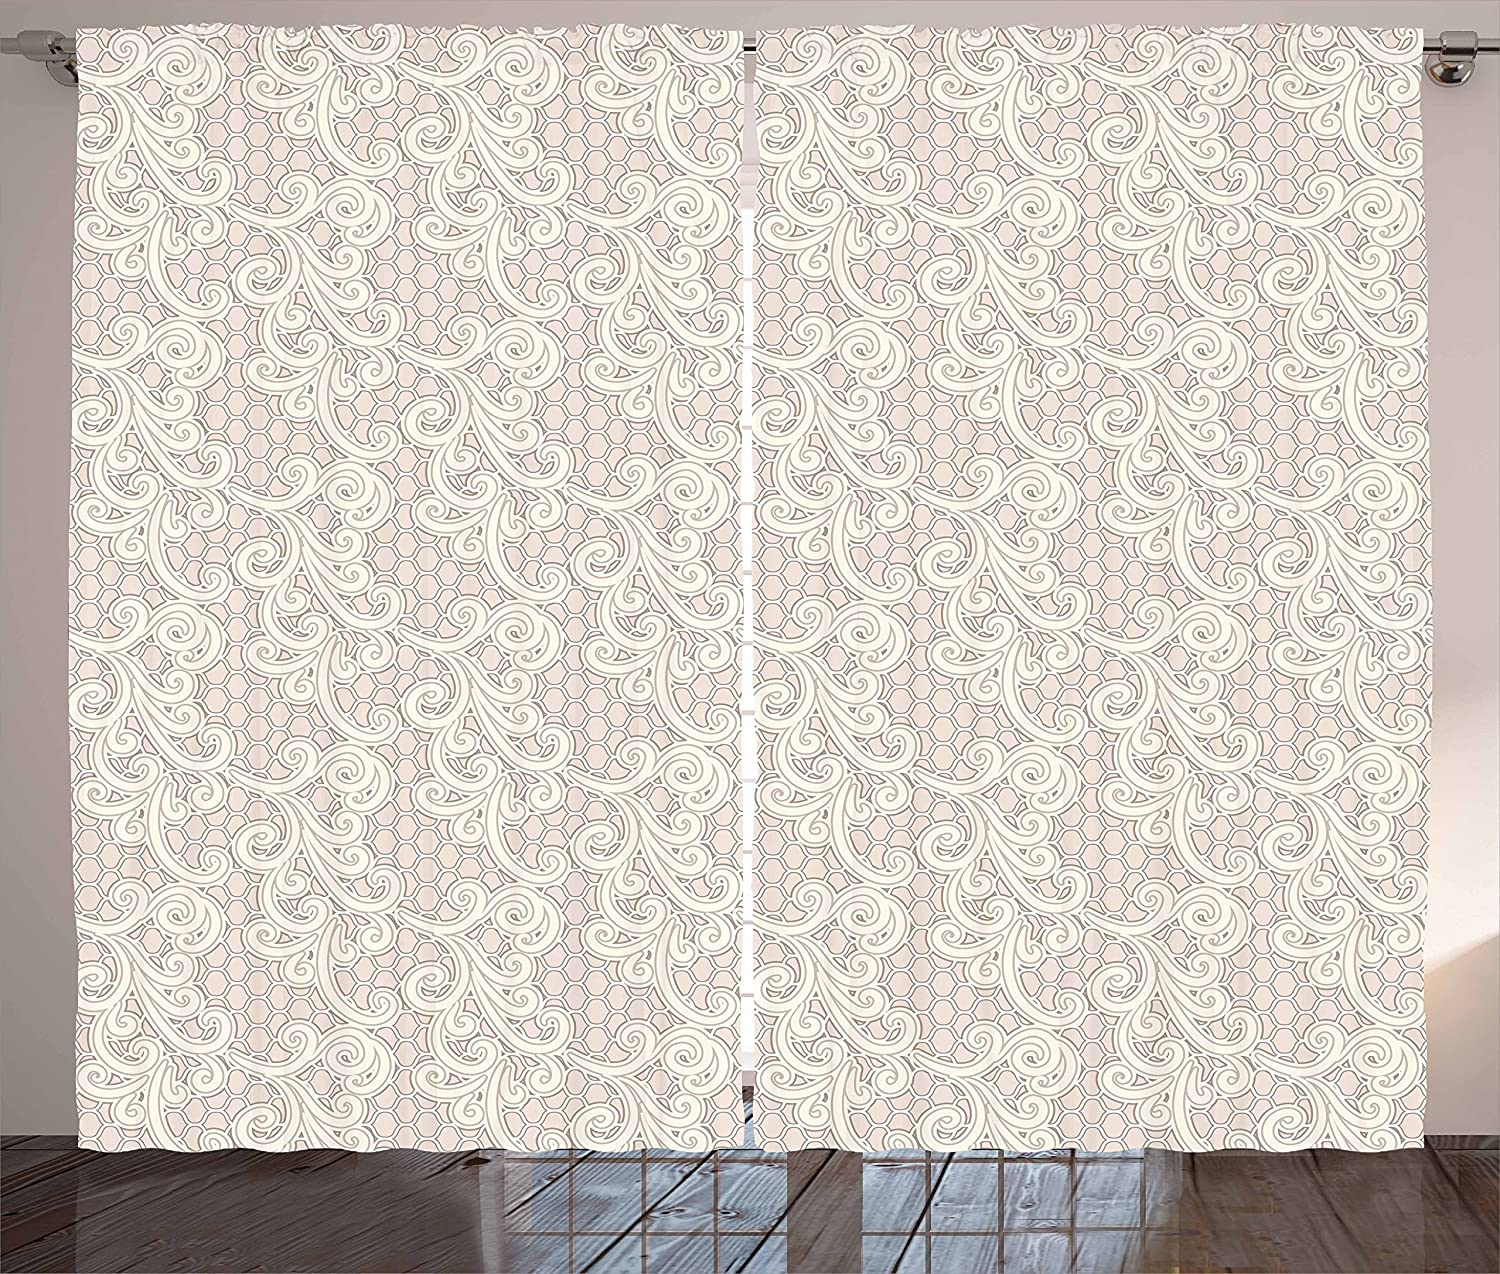 Buy Lunarable Cream Curtains Old Lace Design With Soothing Color Scheme Vintage Style Classical Inspired Image Living Room Bedroom Window Drapes 2 Panel Set 108 X 96 Cream Tan Online At Low